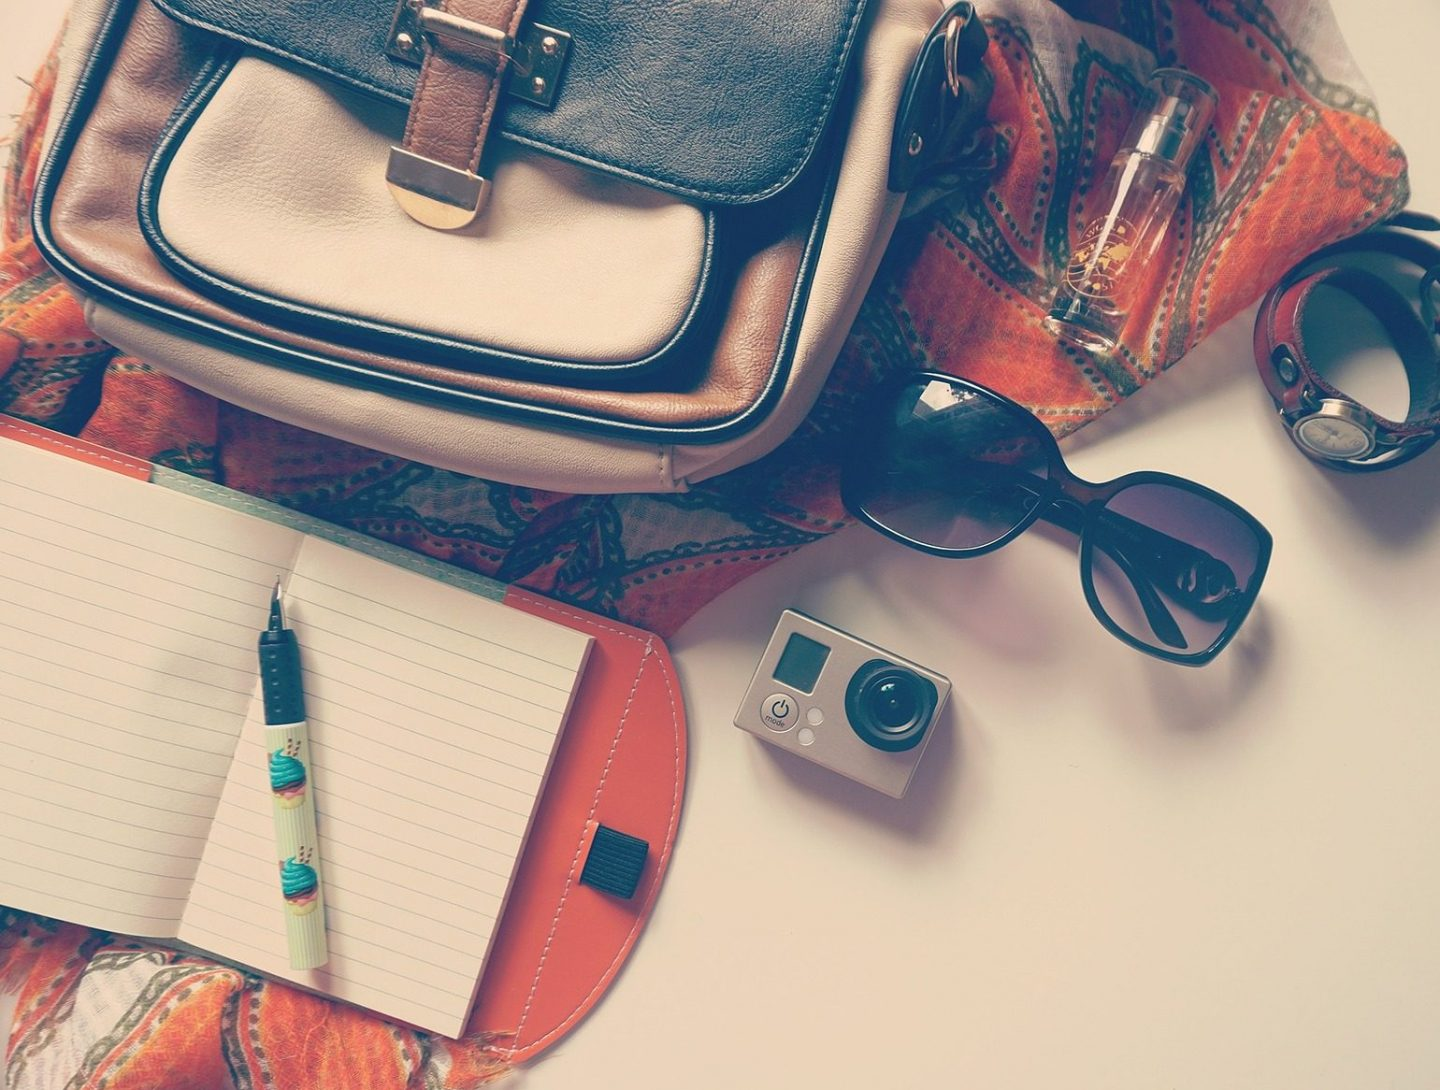 Carry on essentials for the conscious traveller. Image by Andrian Valeanu from Pixabay